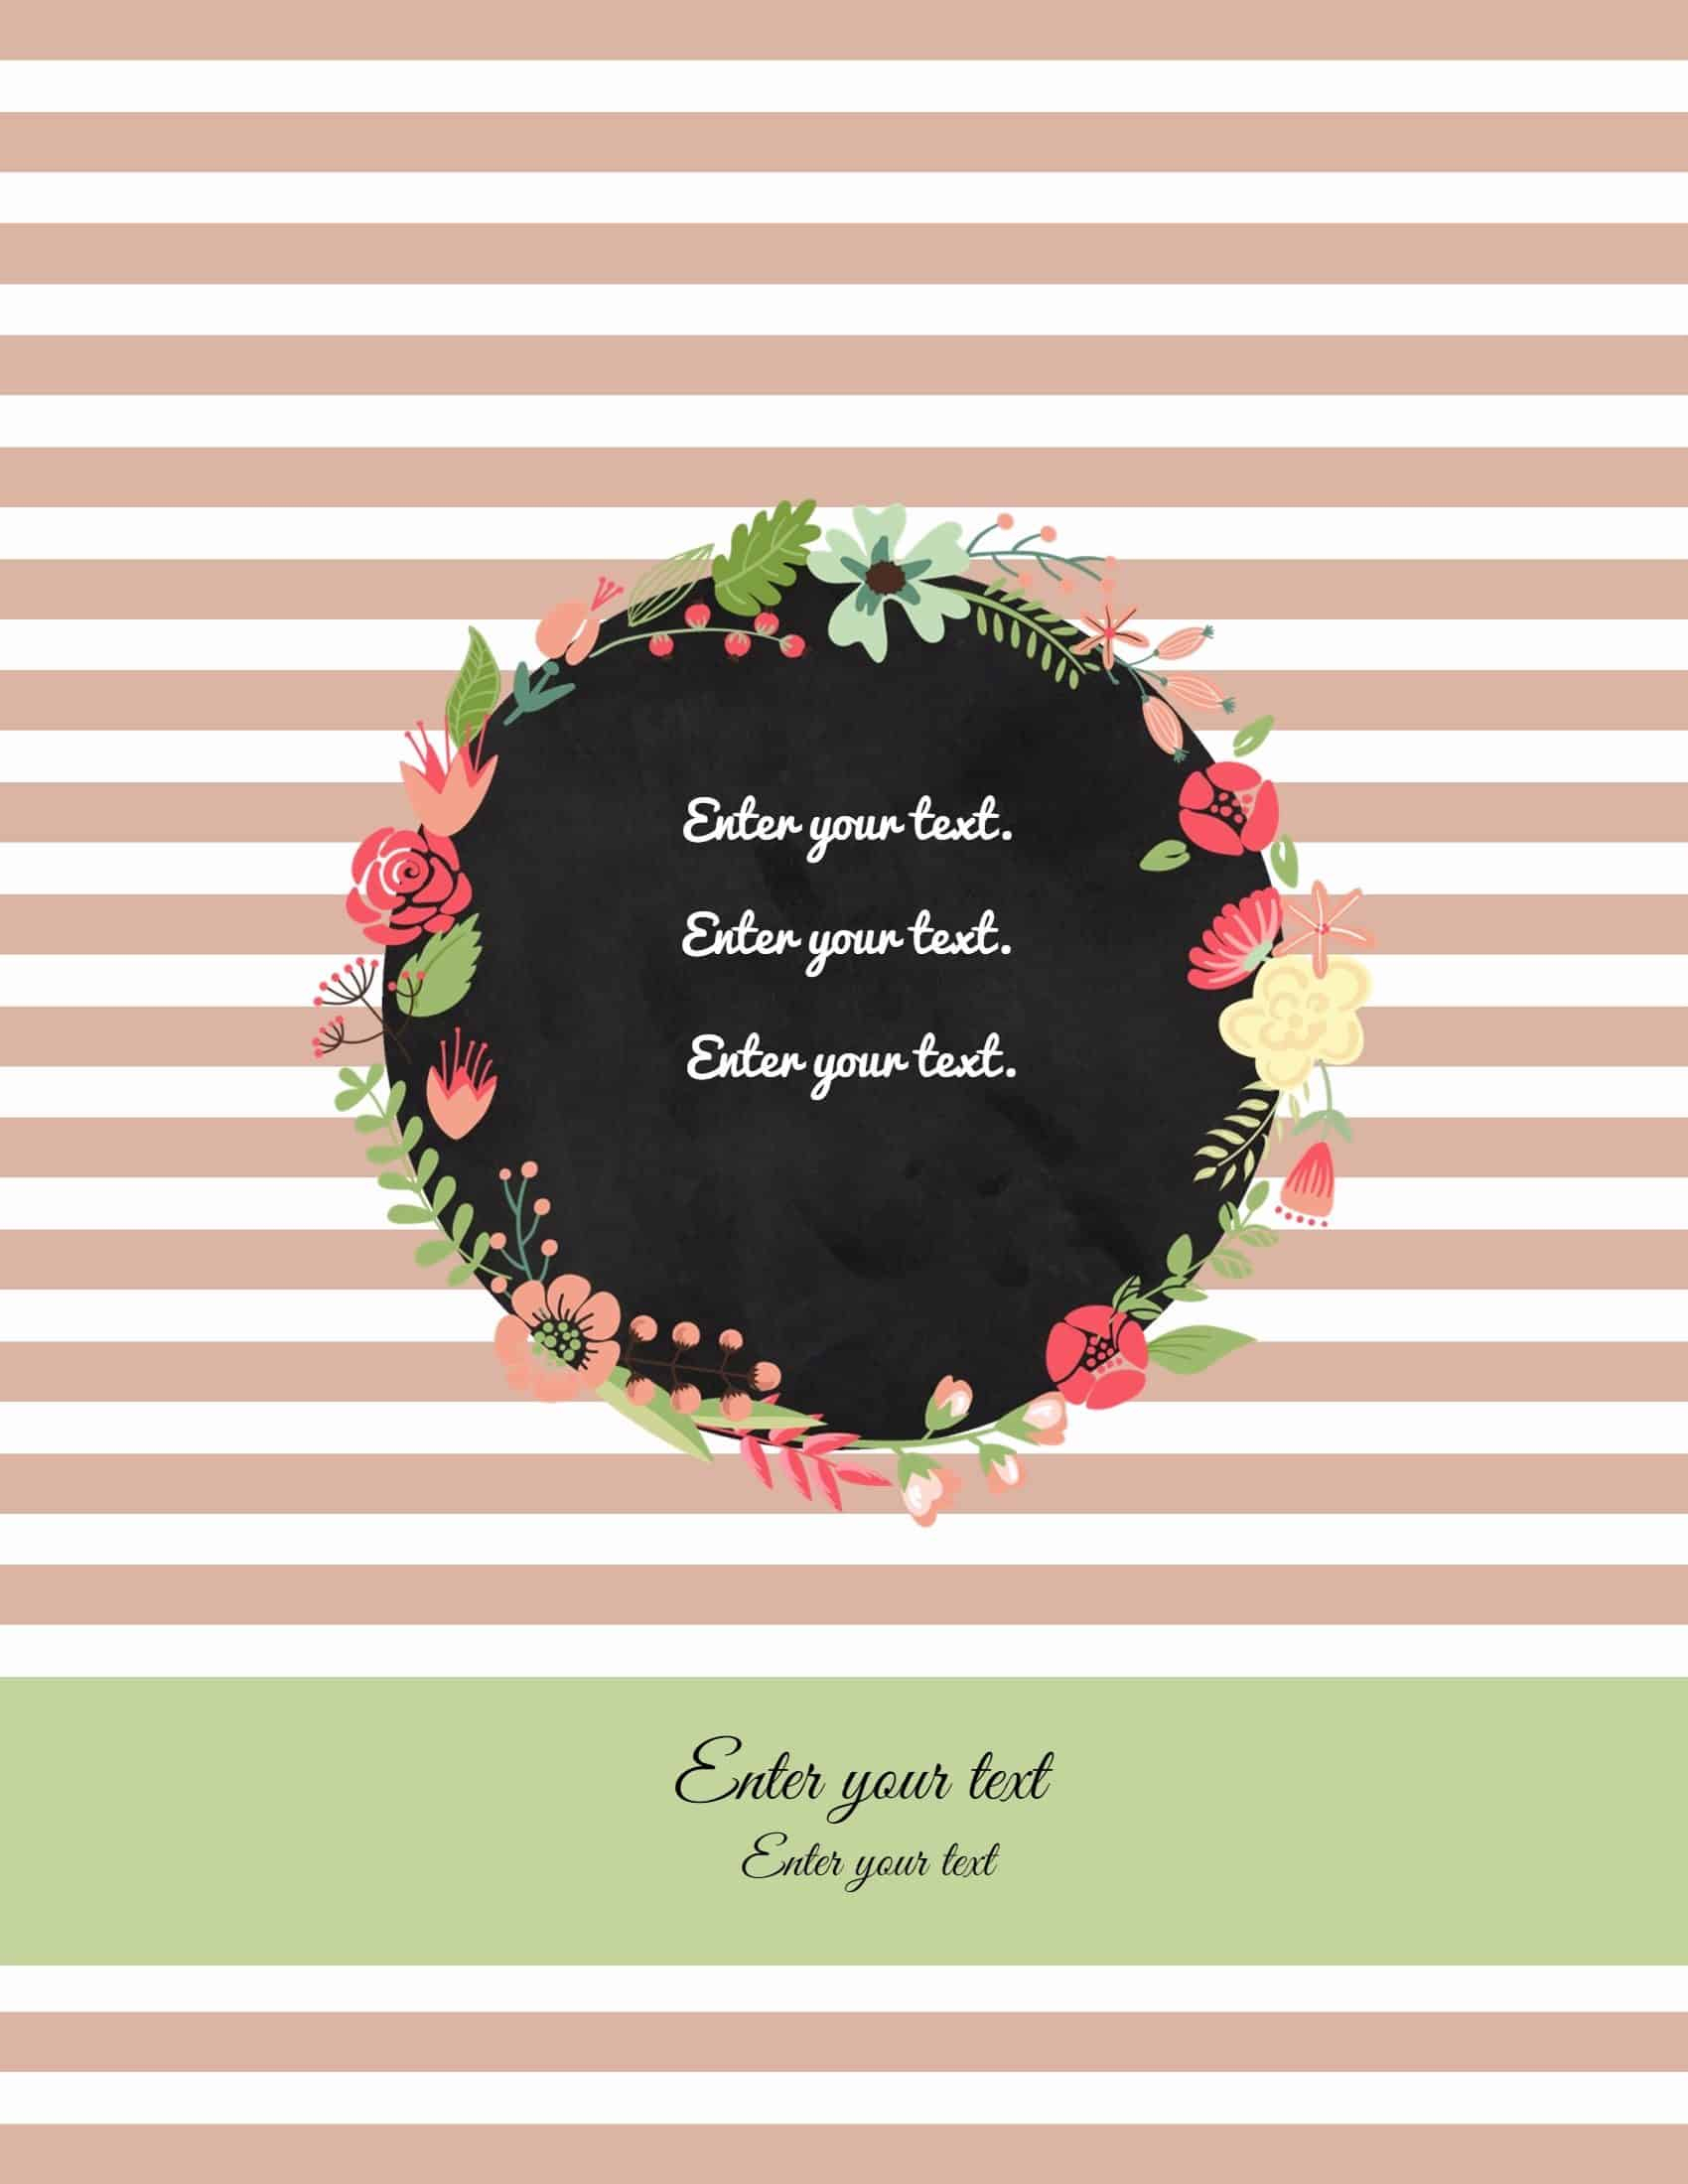 Free Binder Cover Templates   Customize Online & Print At Home   Free! - Cute Free Printable Binder Covers